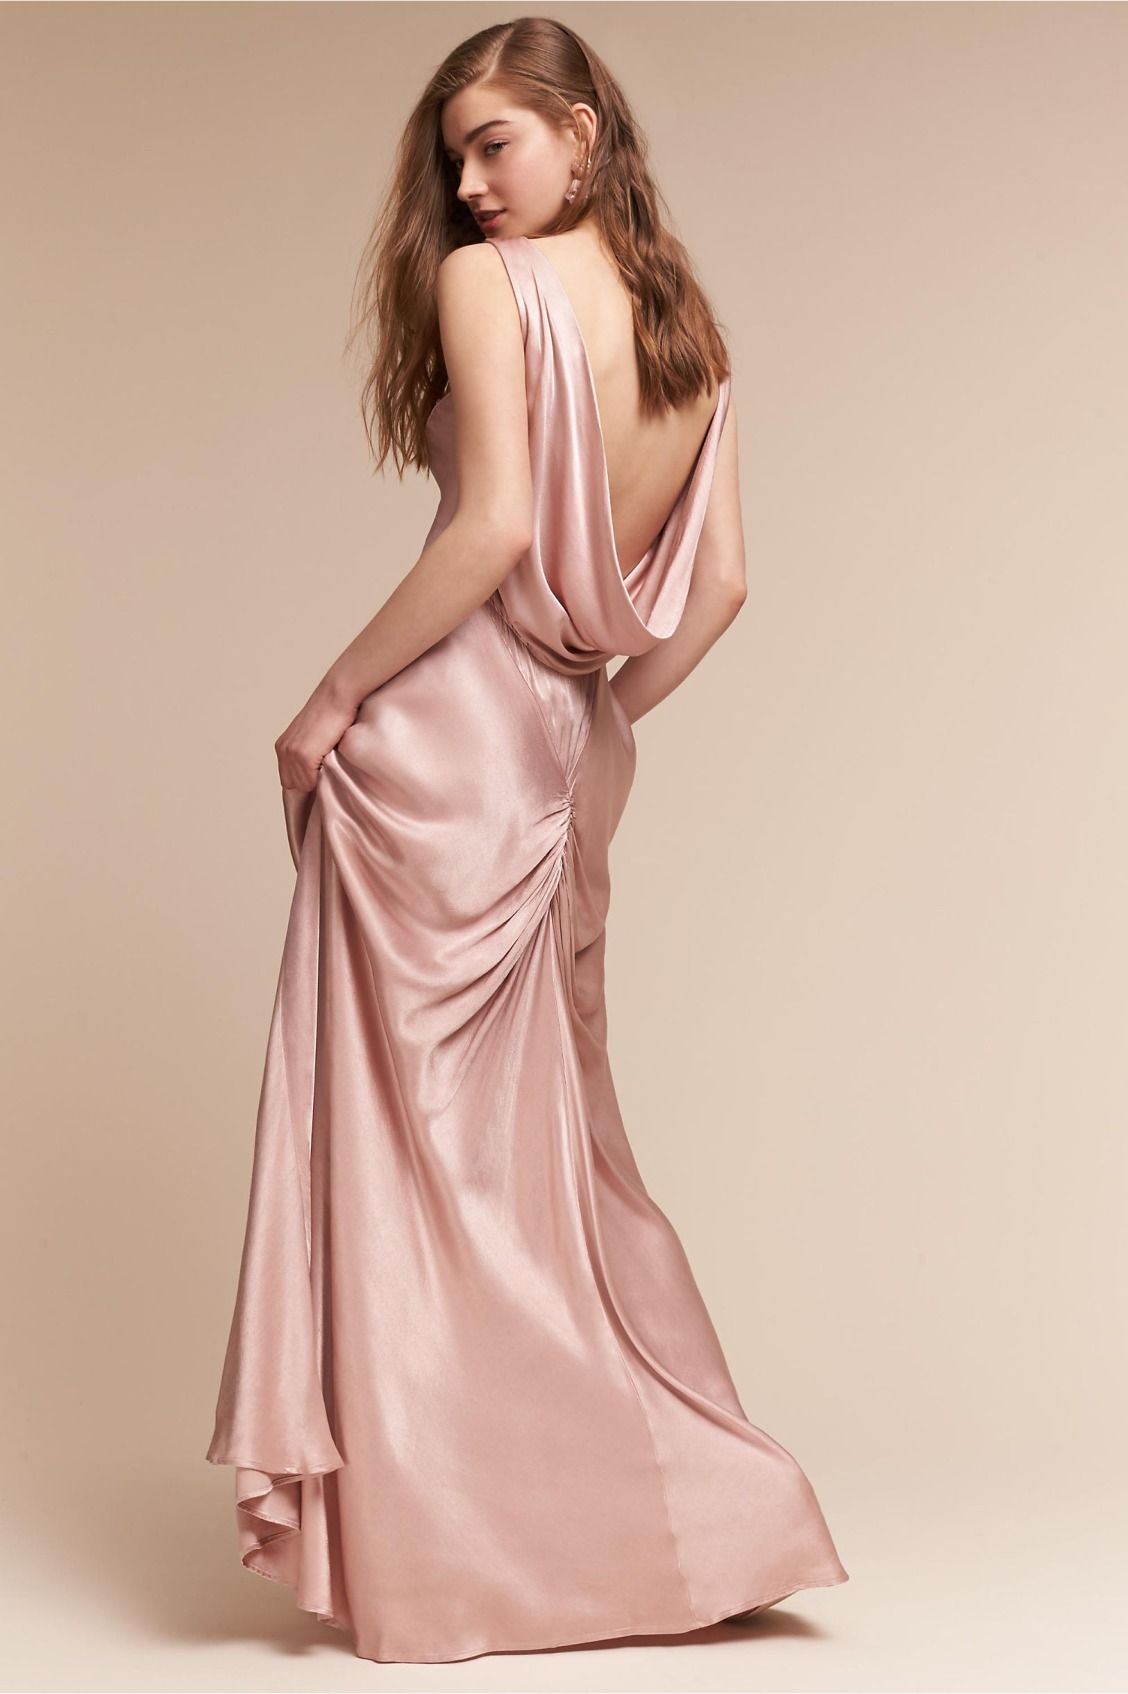 luxe satin | Edie Dress from BHLDN | Black Tie Wedding | Pinterest ...